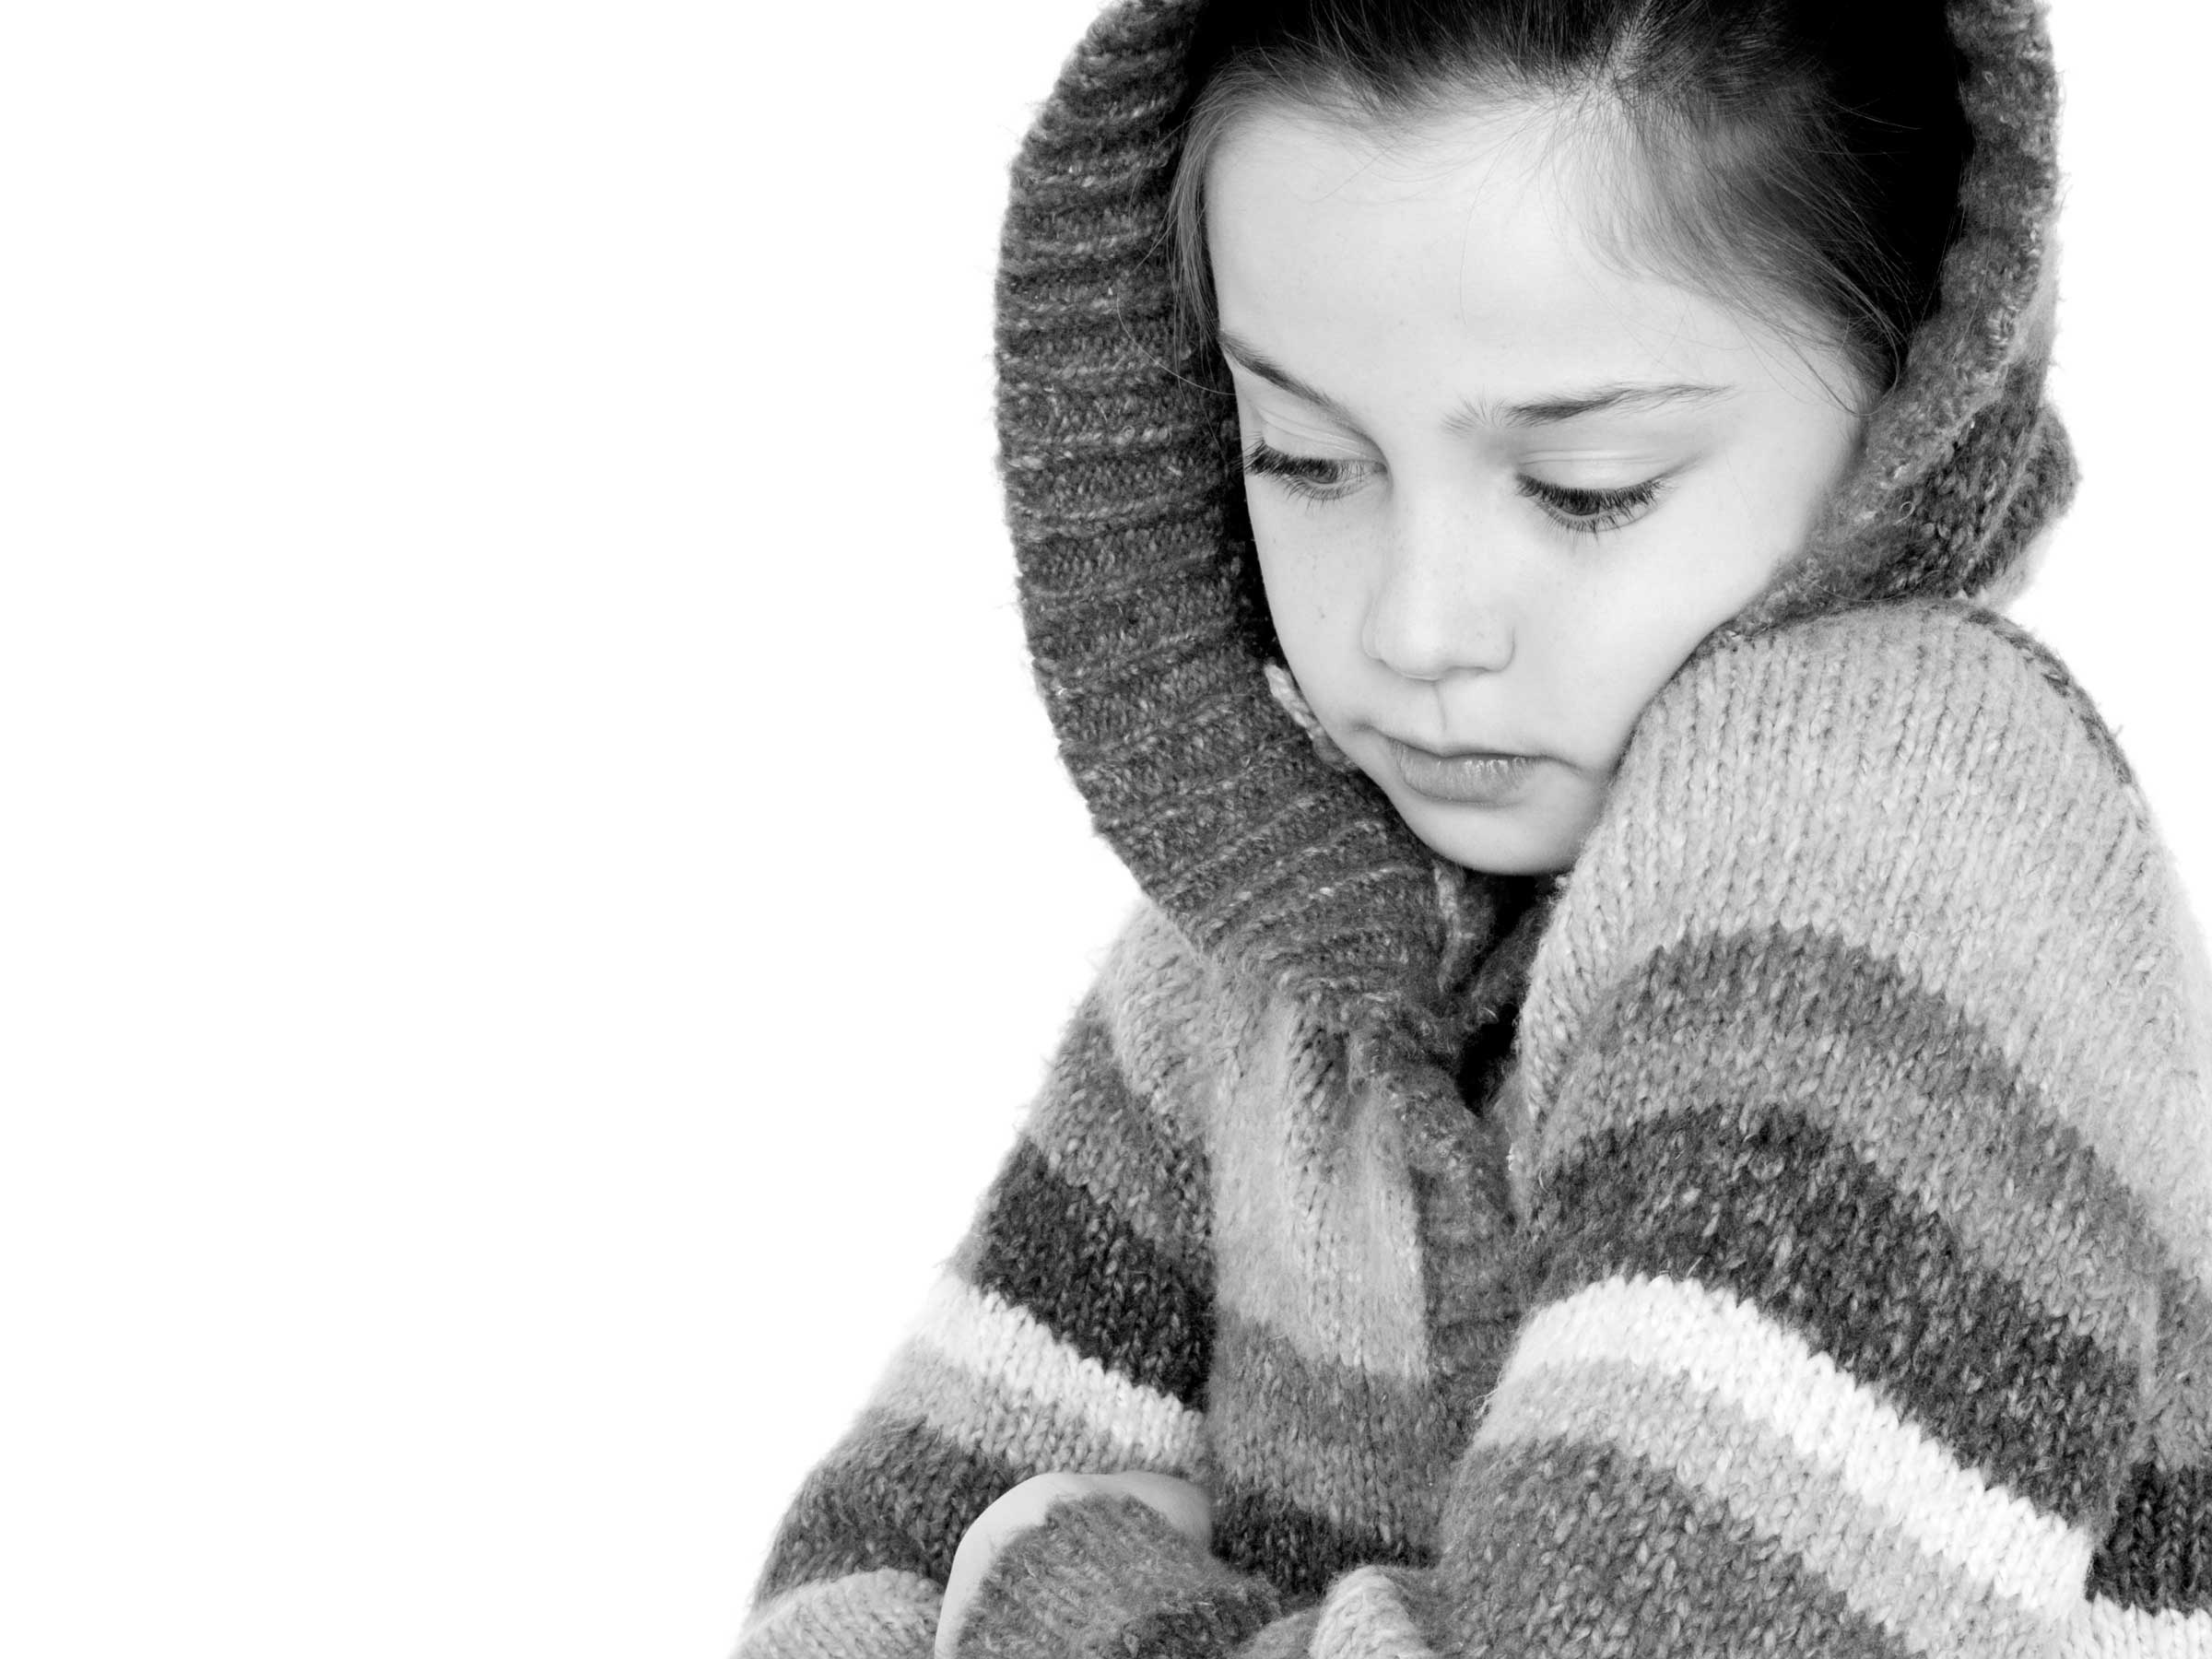 22-Home-Shoot-Girl-In-Cardigan-Hood-Black-And-White-Philip-Murray-Photography-Dublin